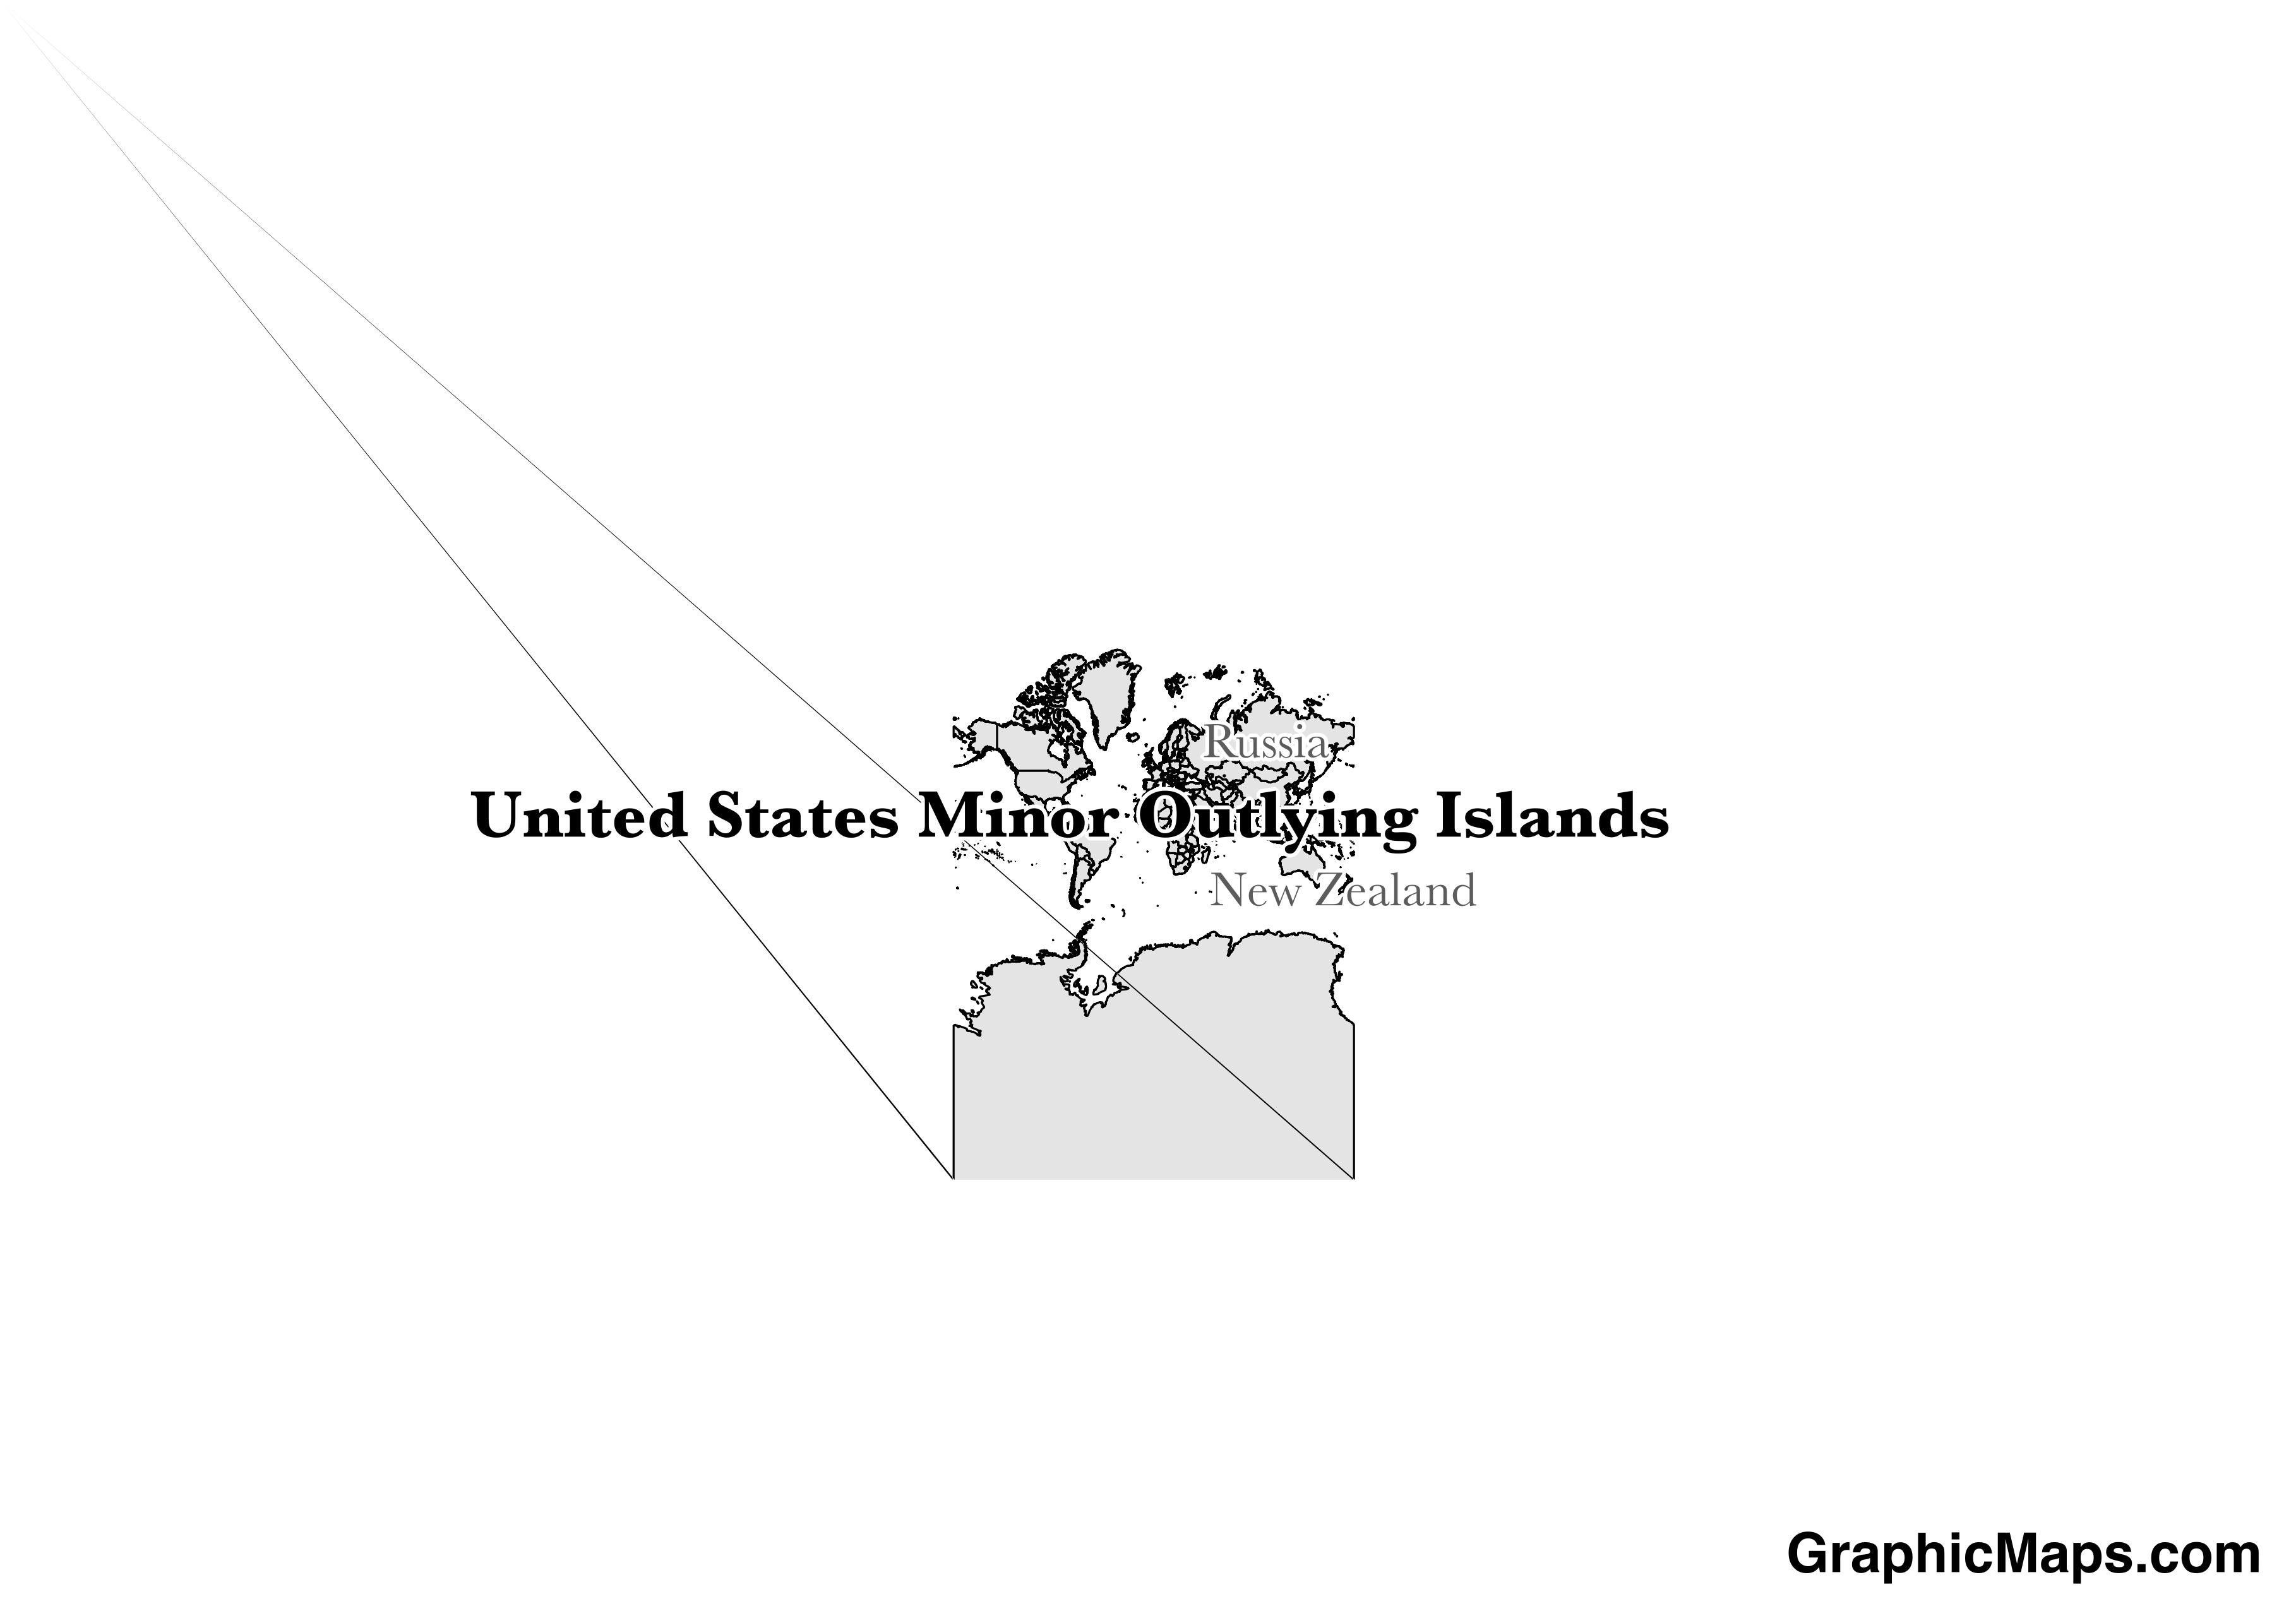 Map showing the location of United States Minor Outlying Islands